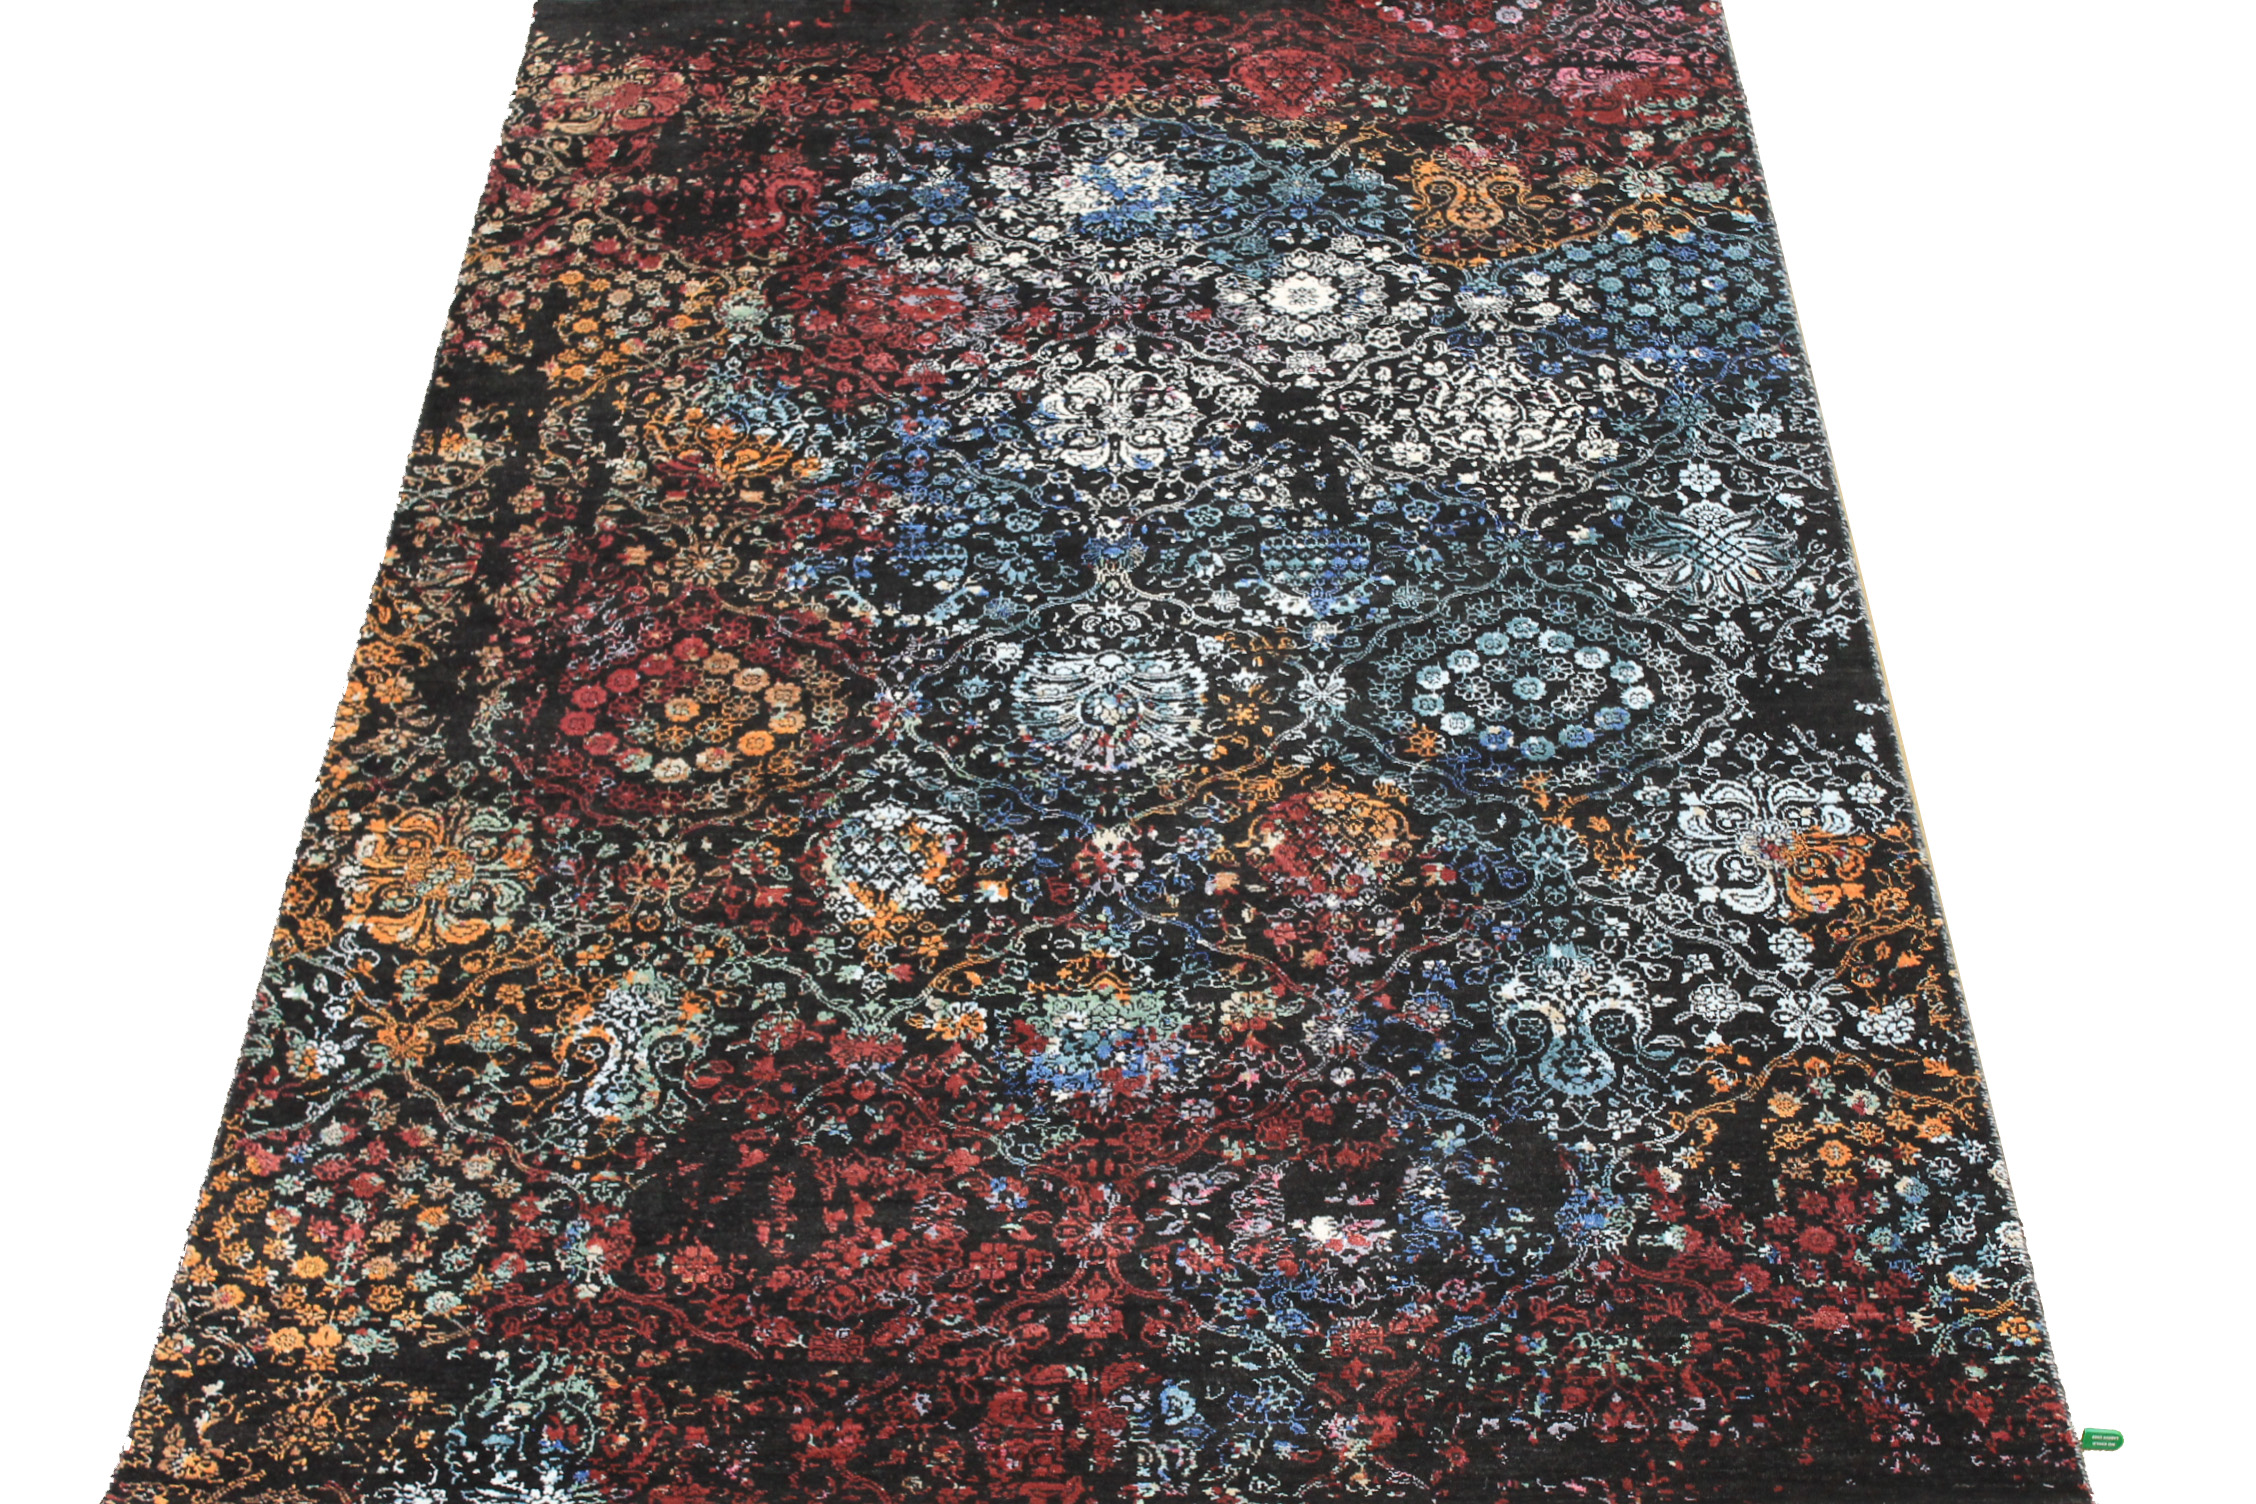 6x9 Transitional Hand Knotted Wool & Viscose Area Rug - MR024596